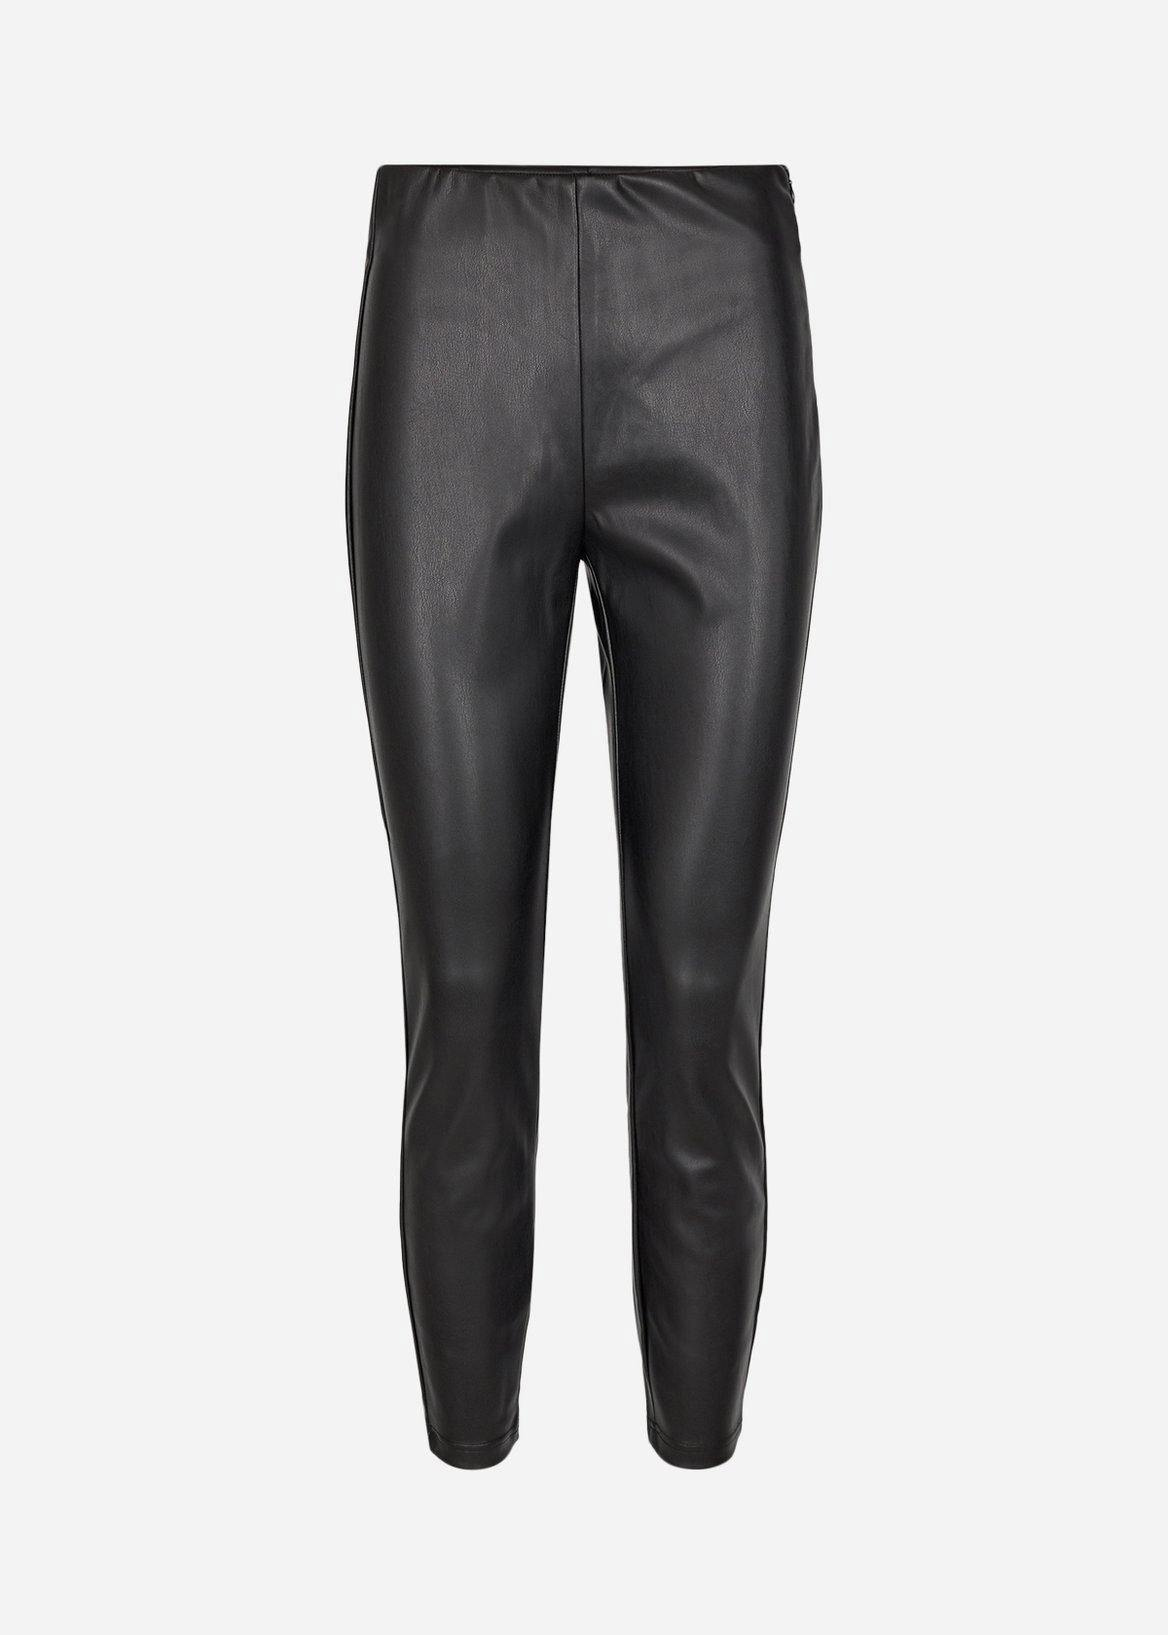 Soya Concept Beckie Faux Leather Trousers - Black